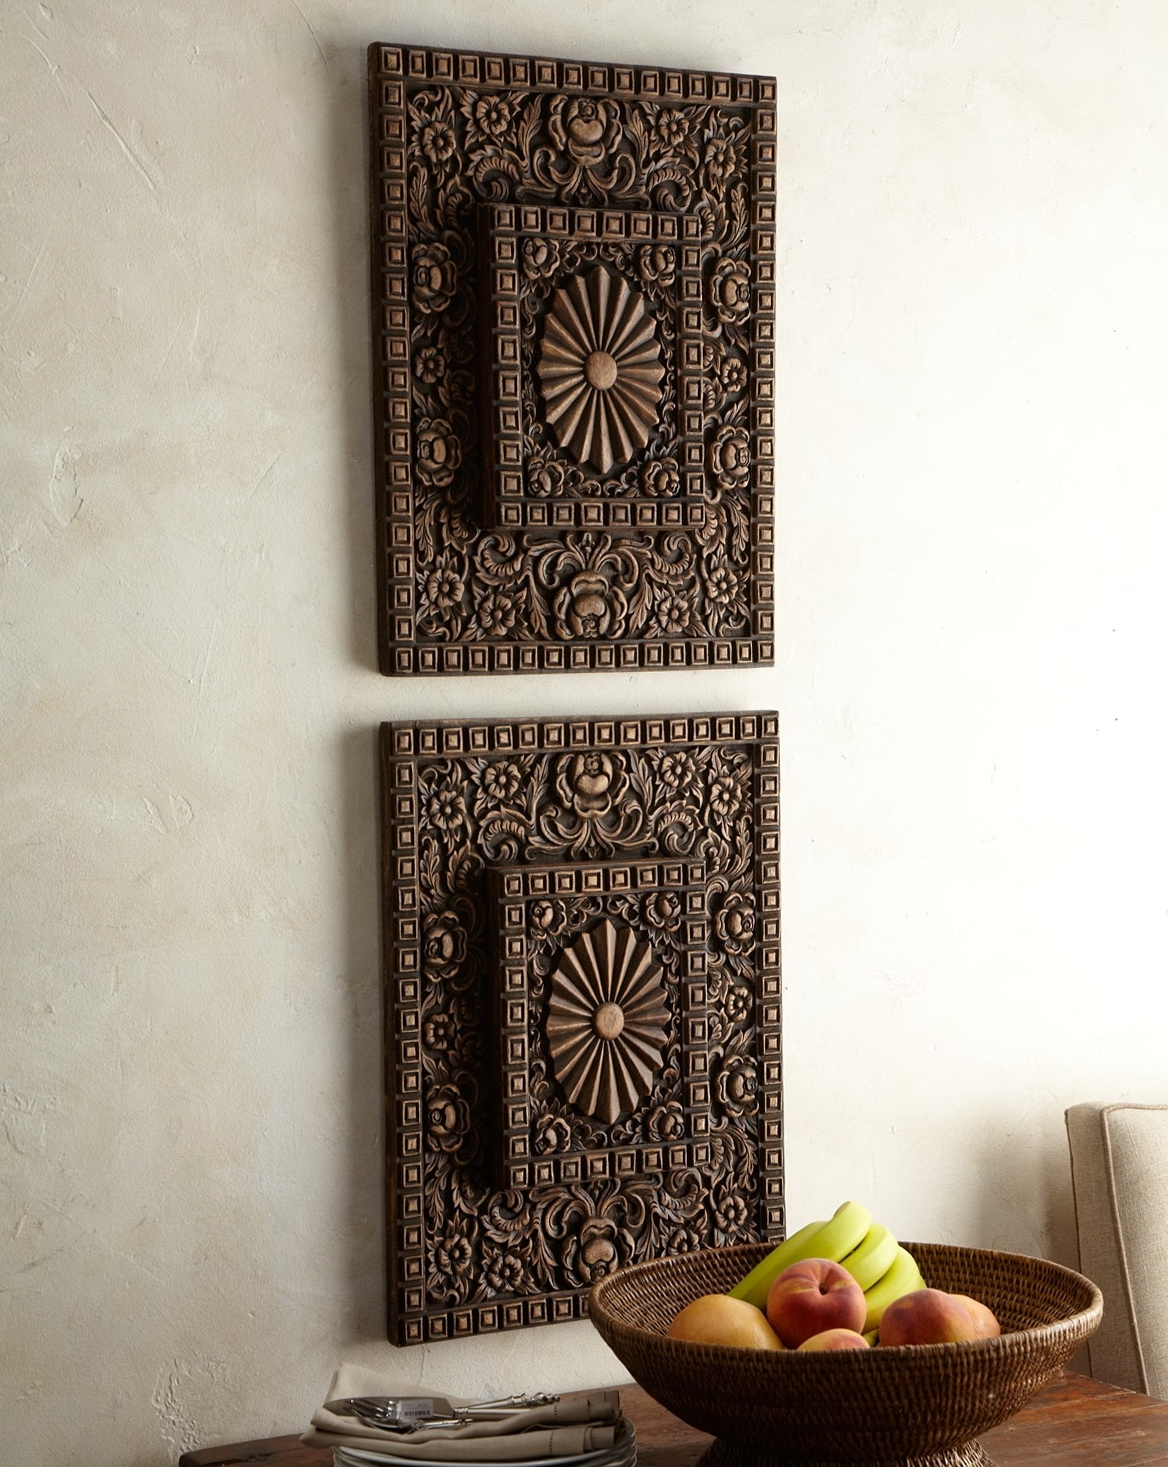 Indian Wooden Wall Art - Wooden Home Design pertaining to Carved Wood Wall Art (Image 13 of 20)